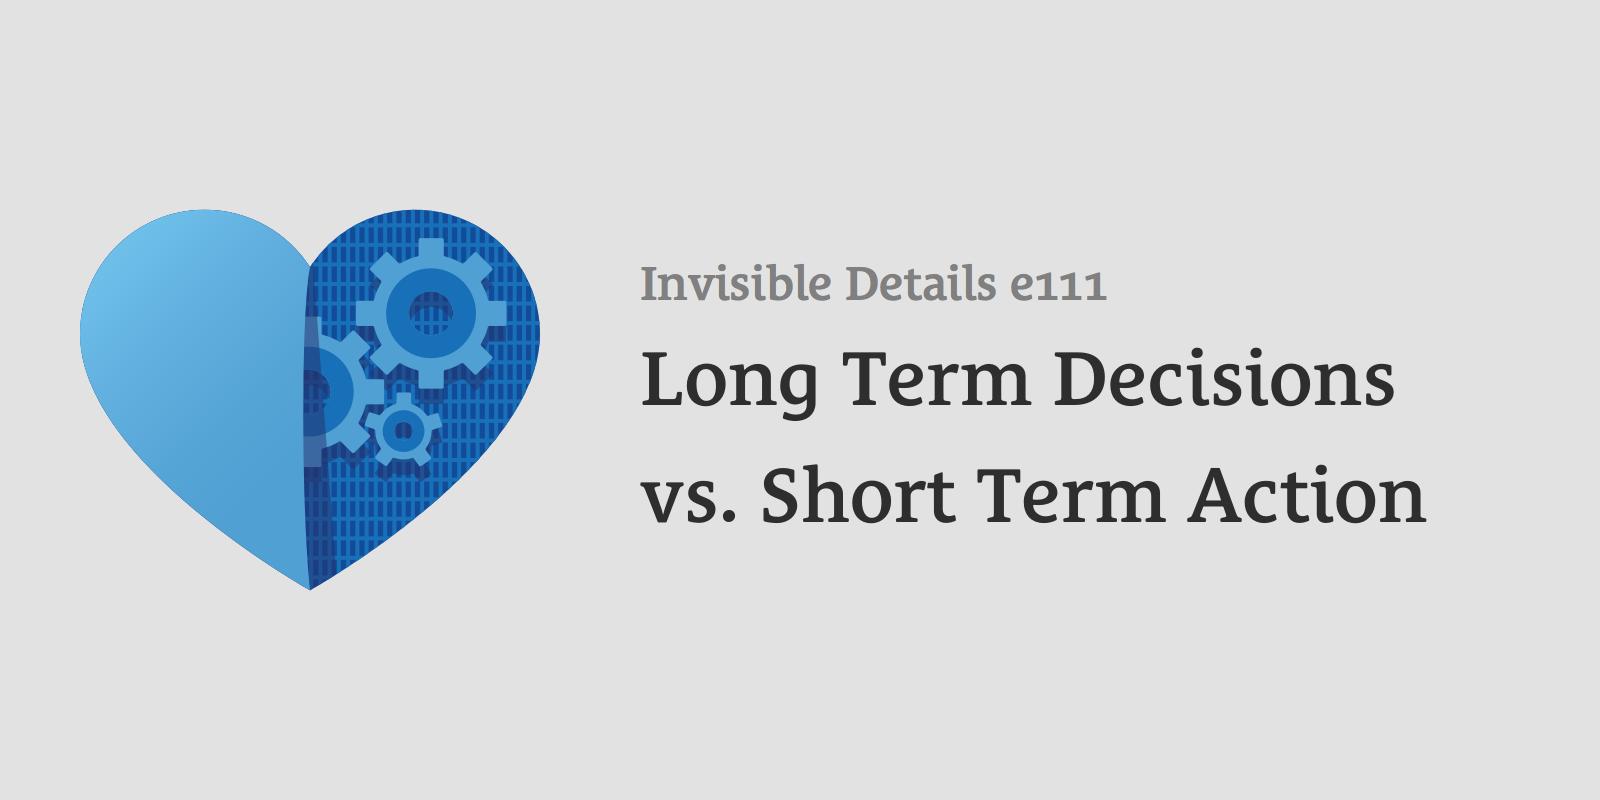 Long Term Decisions vs. Short Term Action